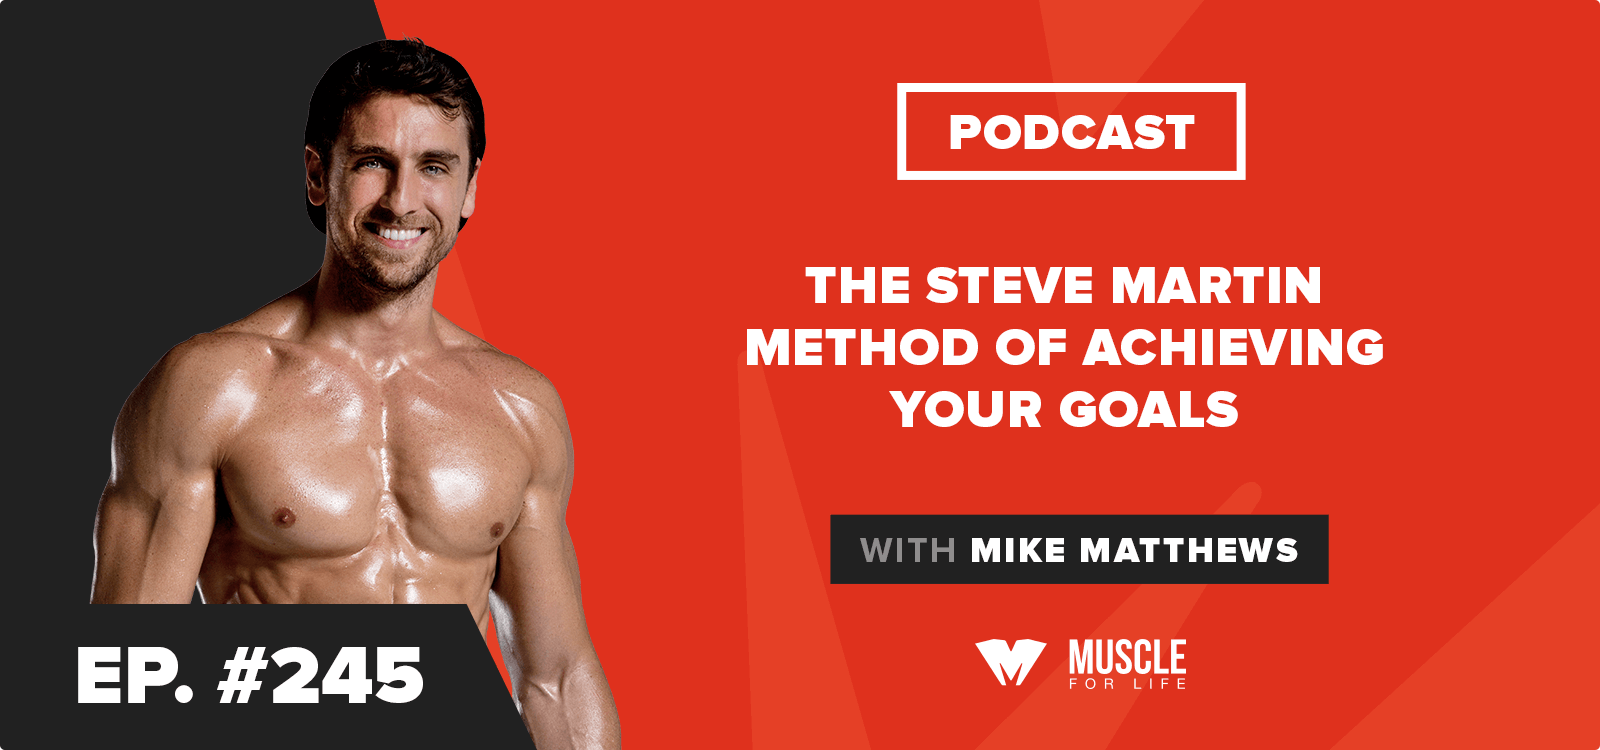 Motivation Monday: The Steve Martin Method of Achieving Your Goals